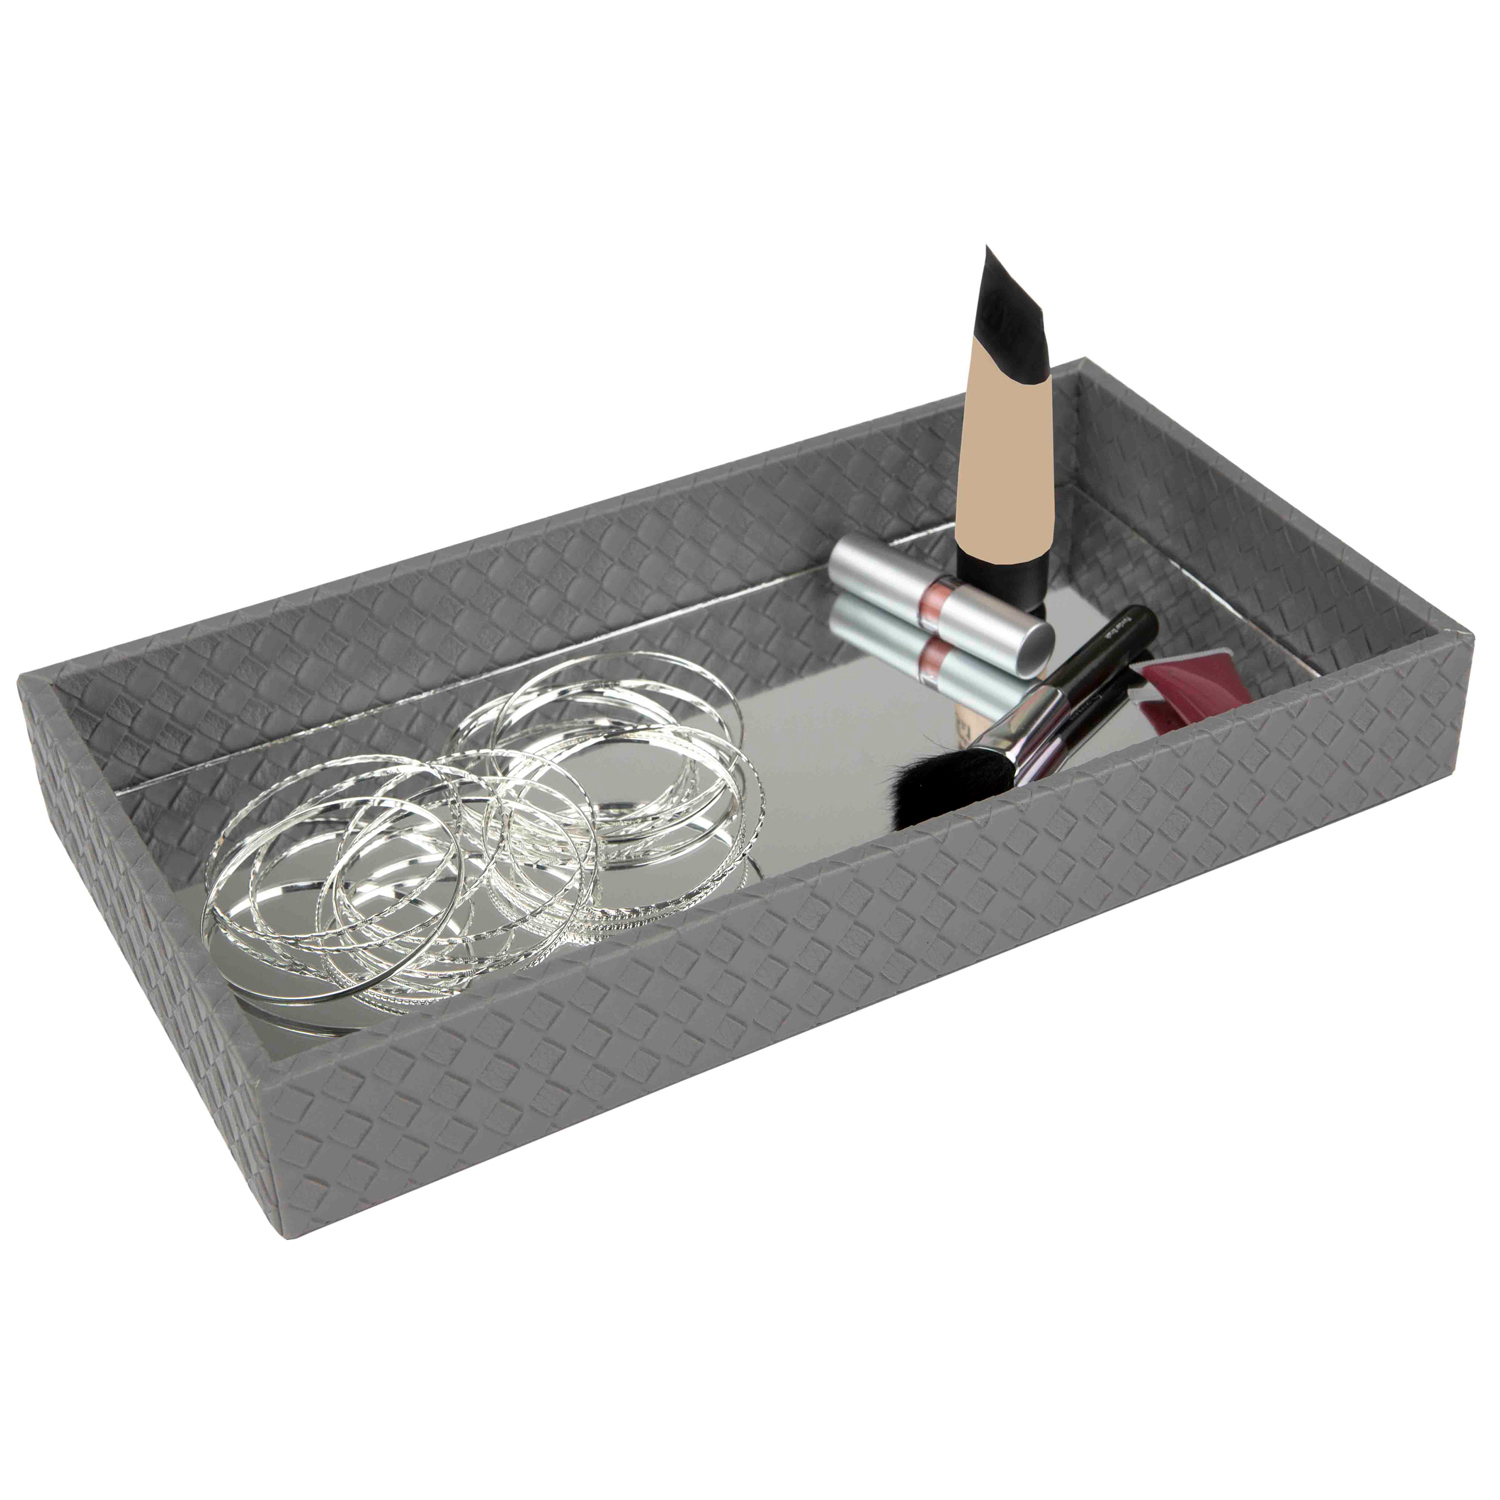 Mirrored Gray Faux Leather Vanity Tray